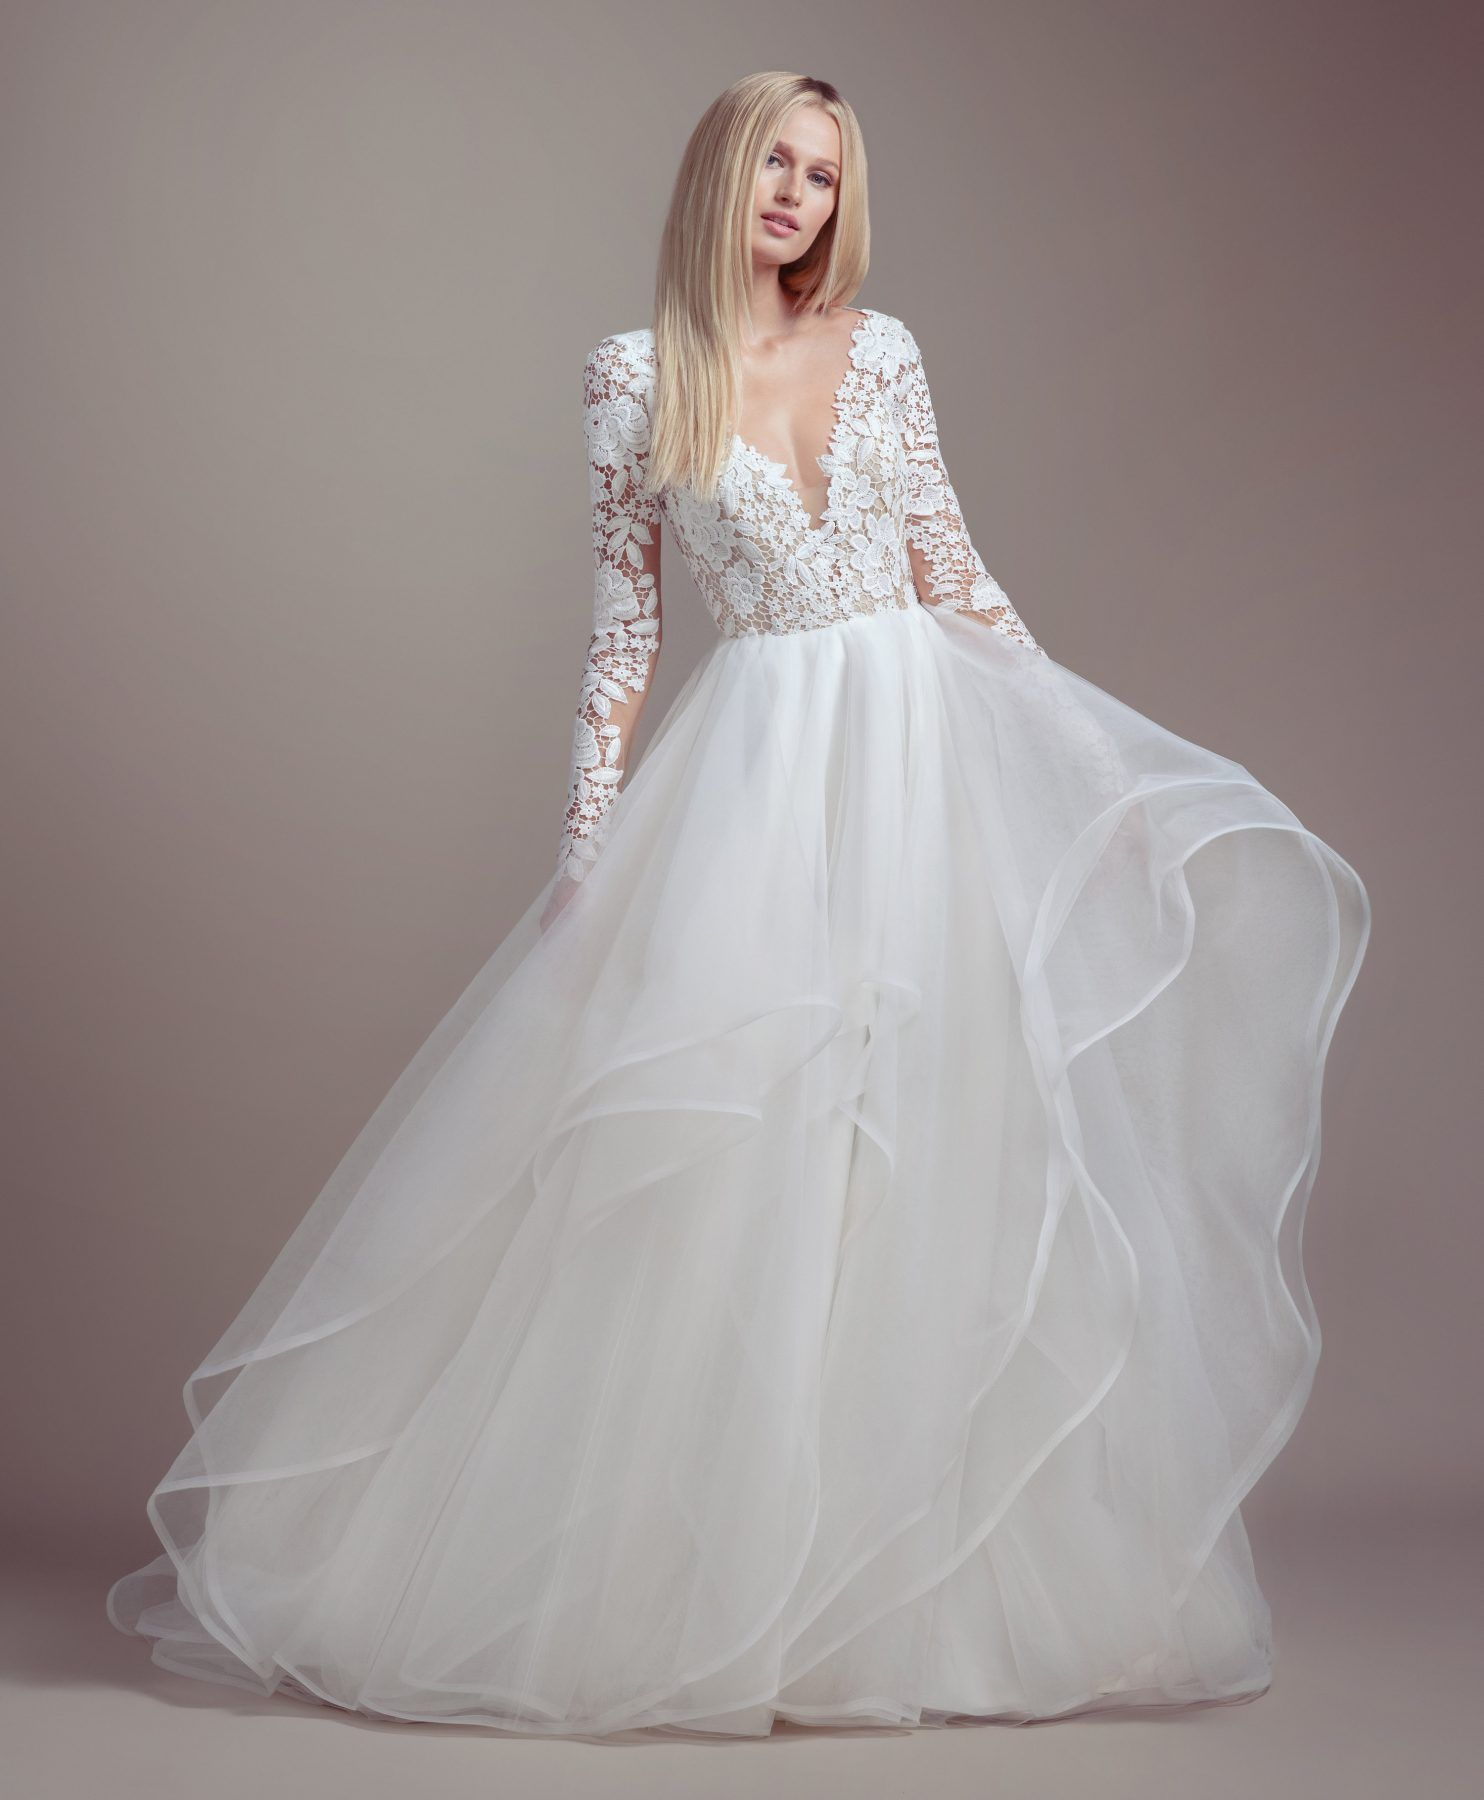 Lace Bodice Long Sleeve Ball Gown Wedding Dress With Images